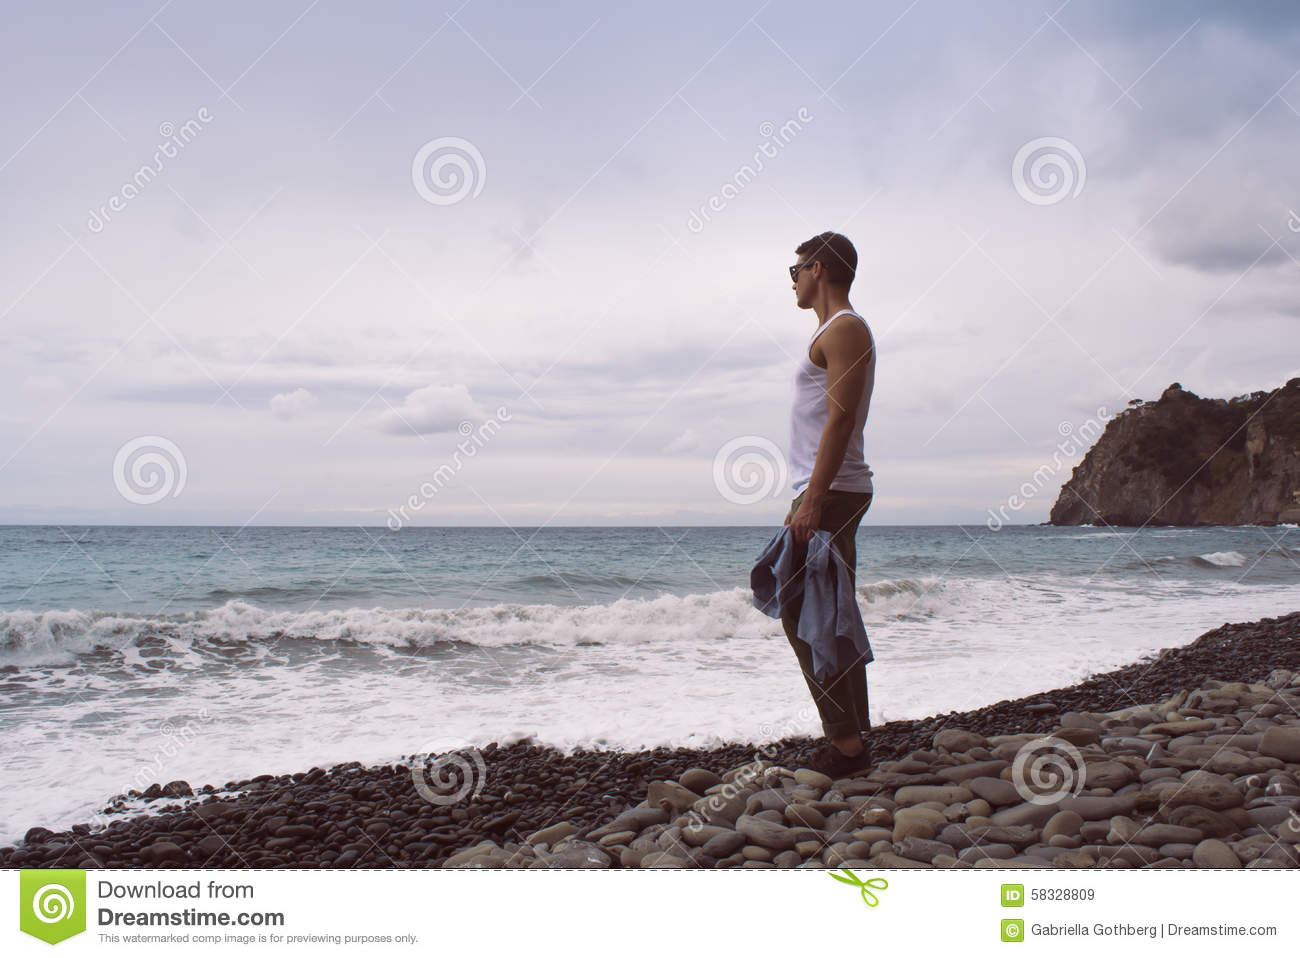 Man standing by the waves of the ocean on a rocky beach.